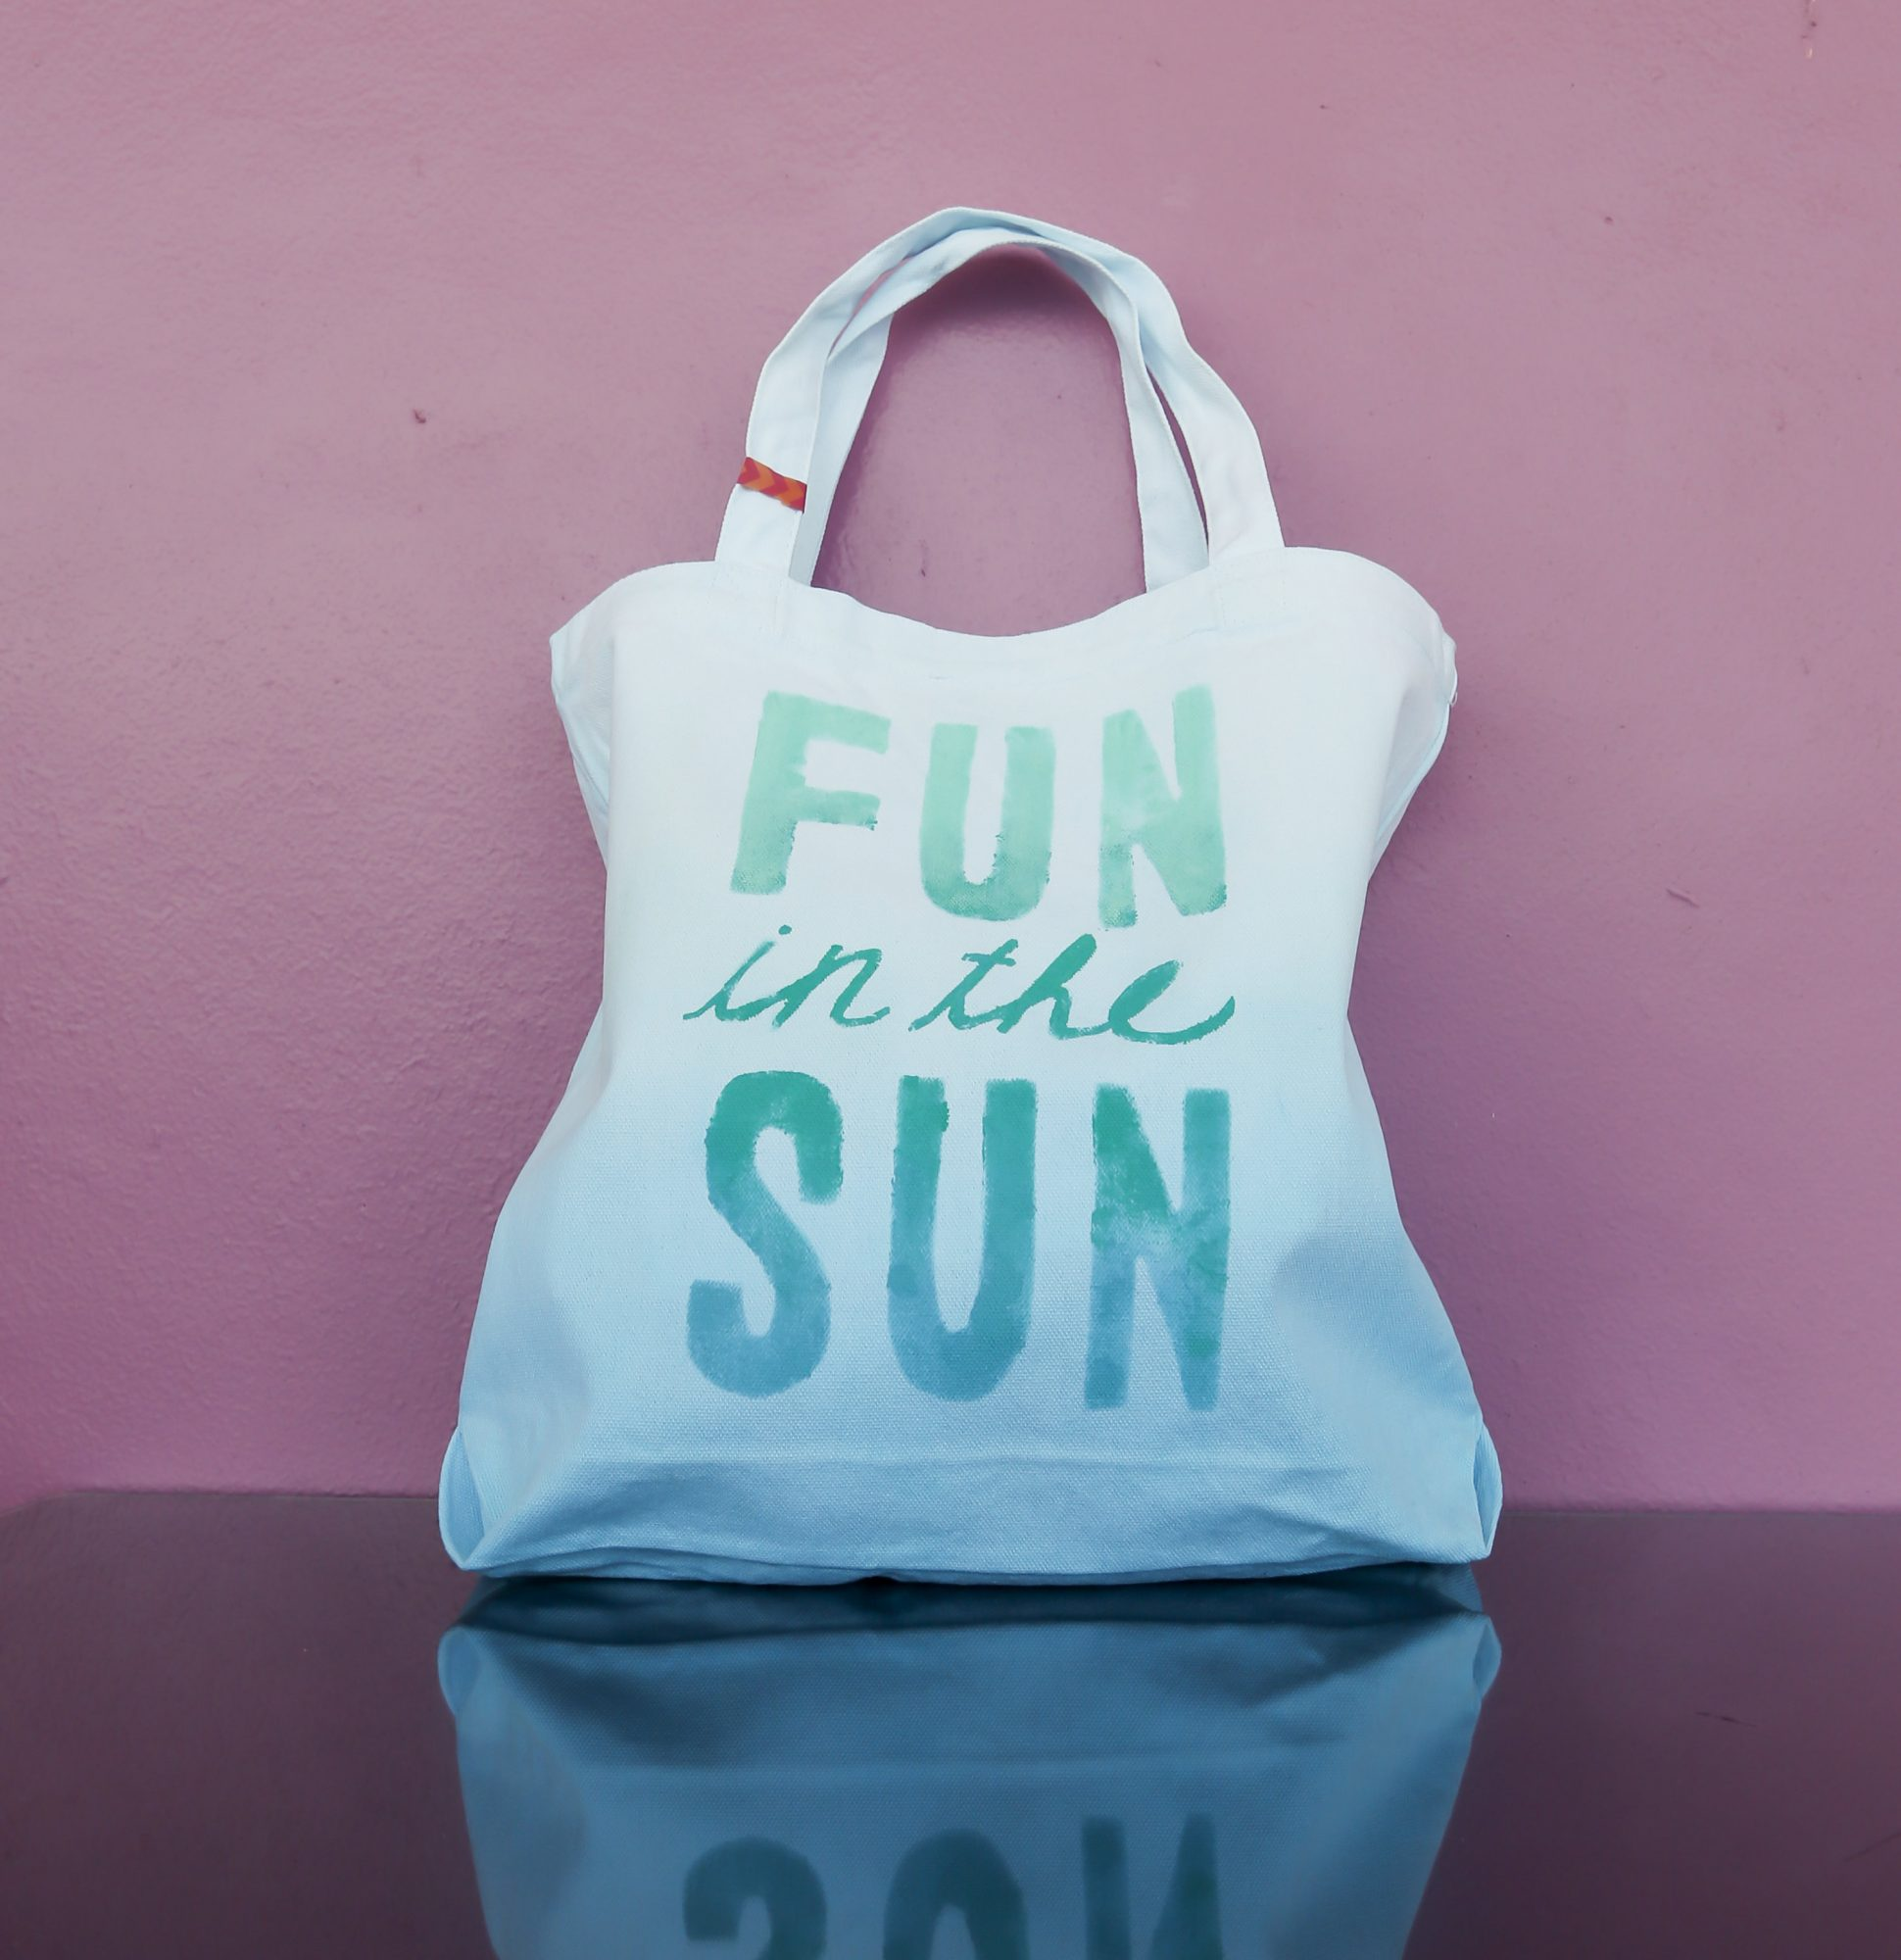 Clever Tote Bags